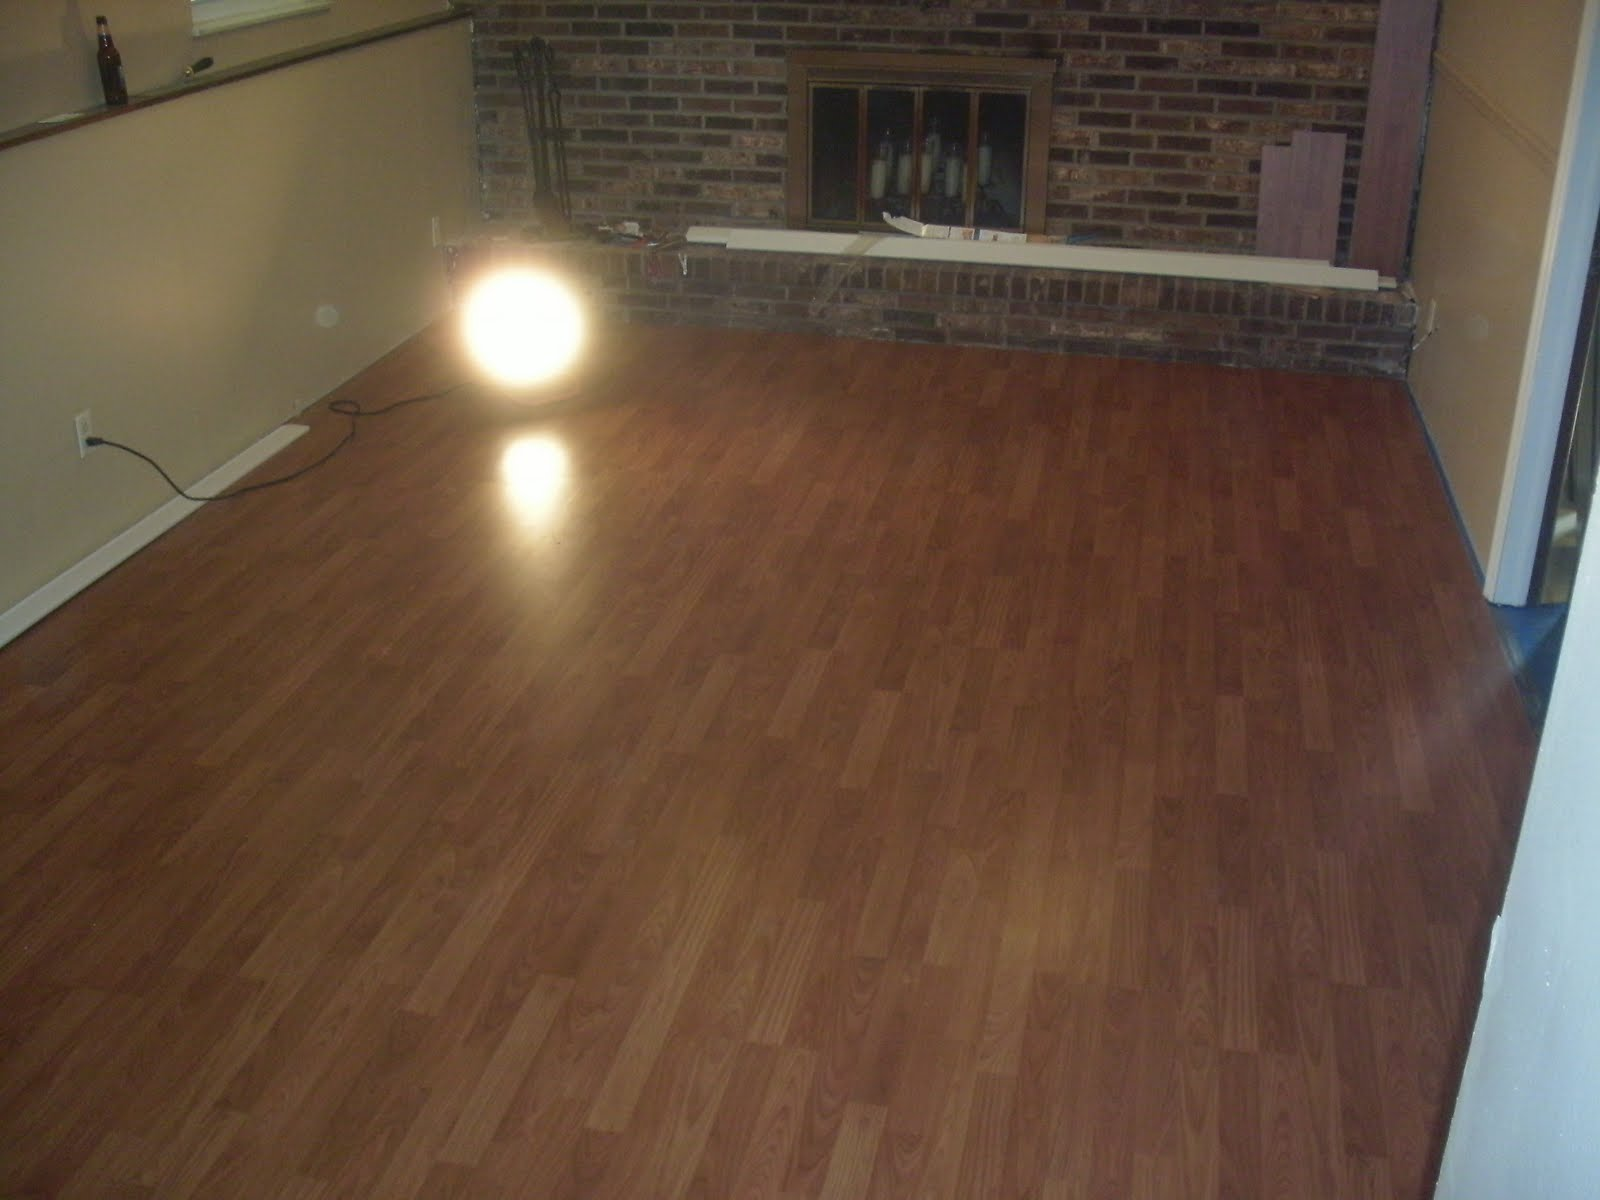 Sigbigdig Swiftlock Laminate Flooring Installation Gunstock